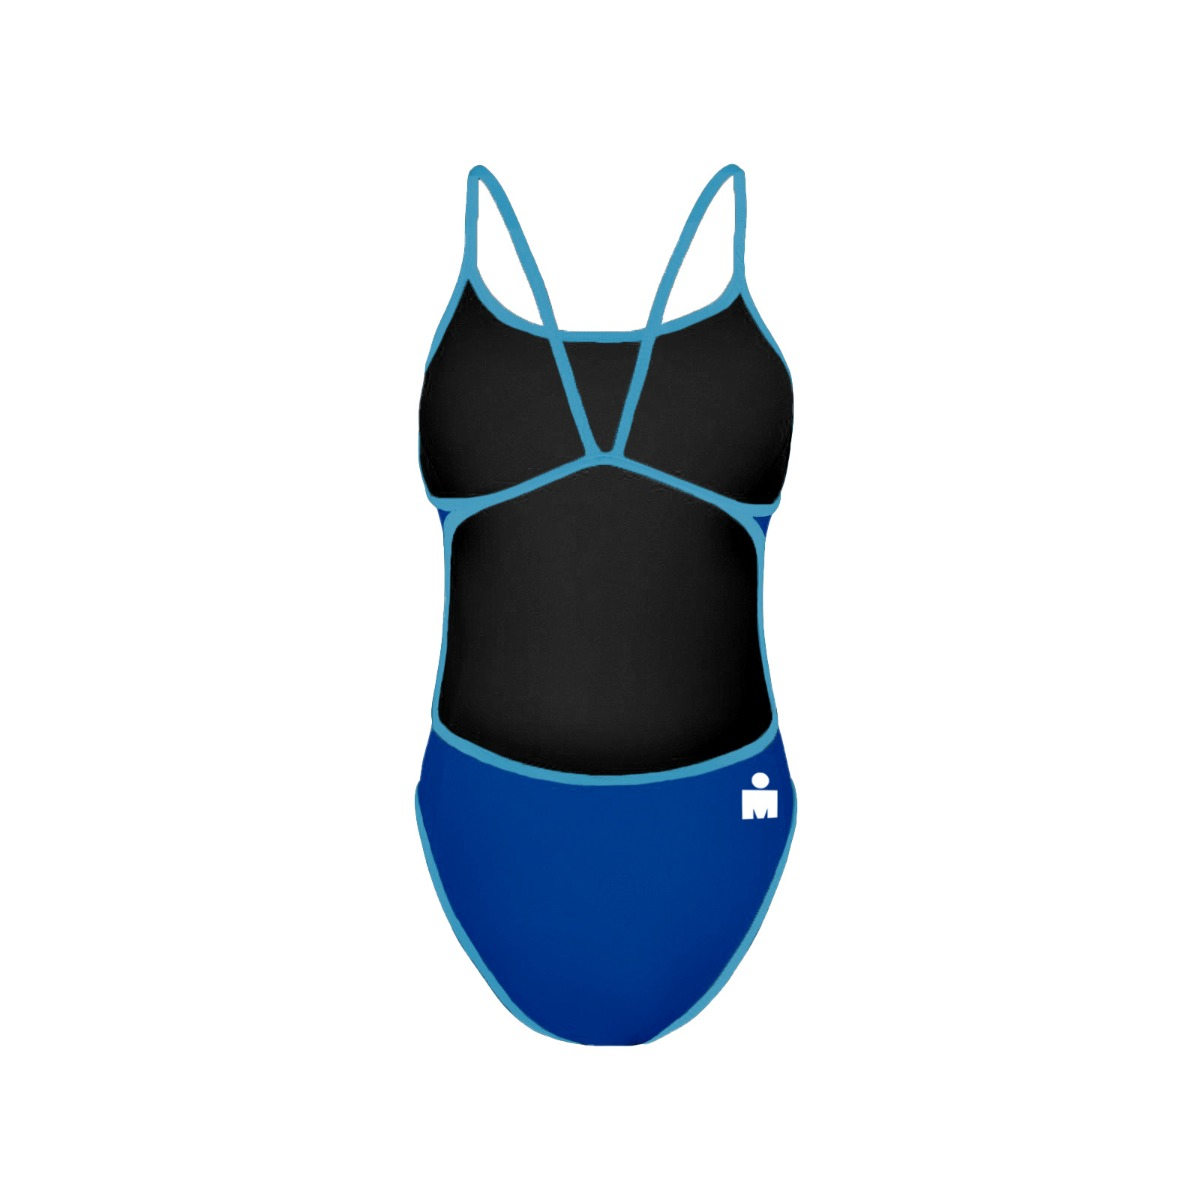 7ae8ac1607 IRONMAN ROKA Women's One-Piece Triangle Back Swimsuit - Royal/Turquoise